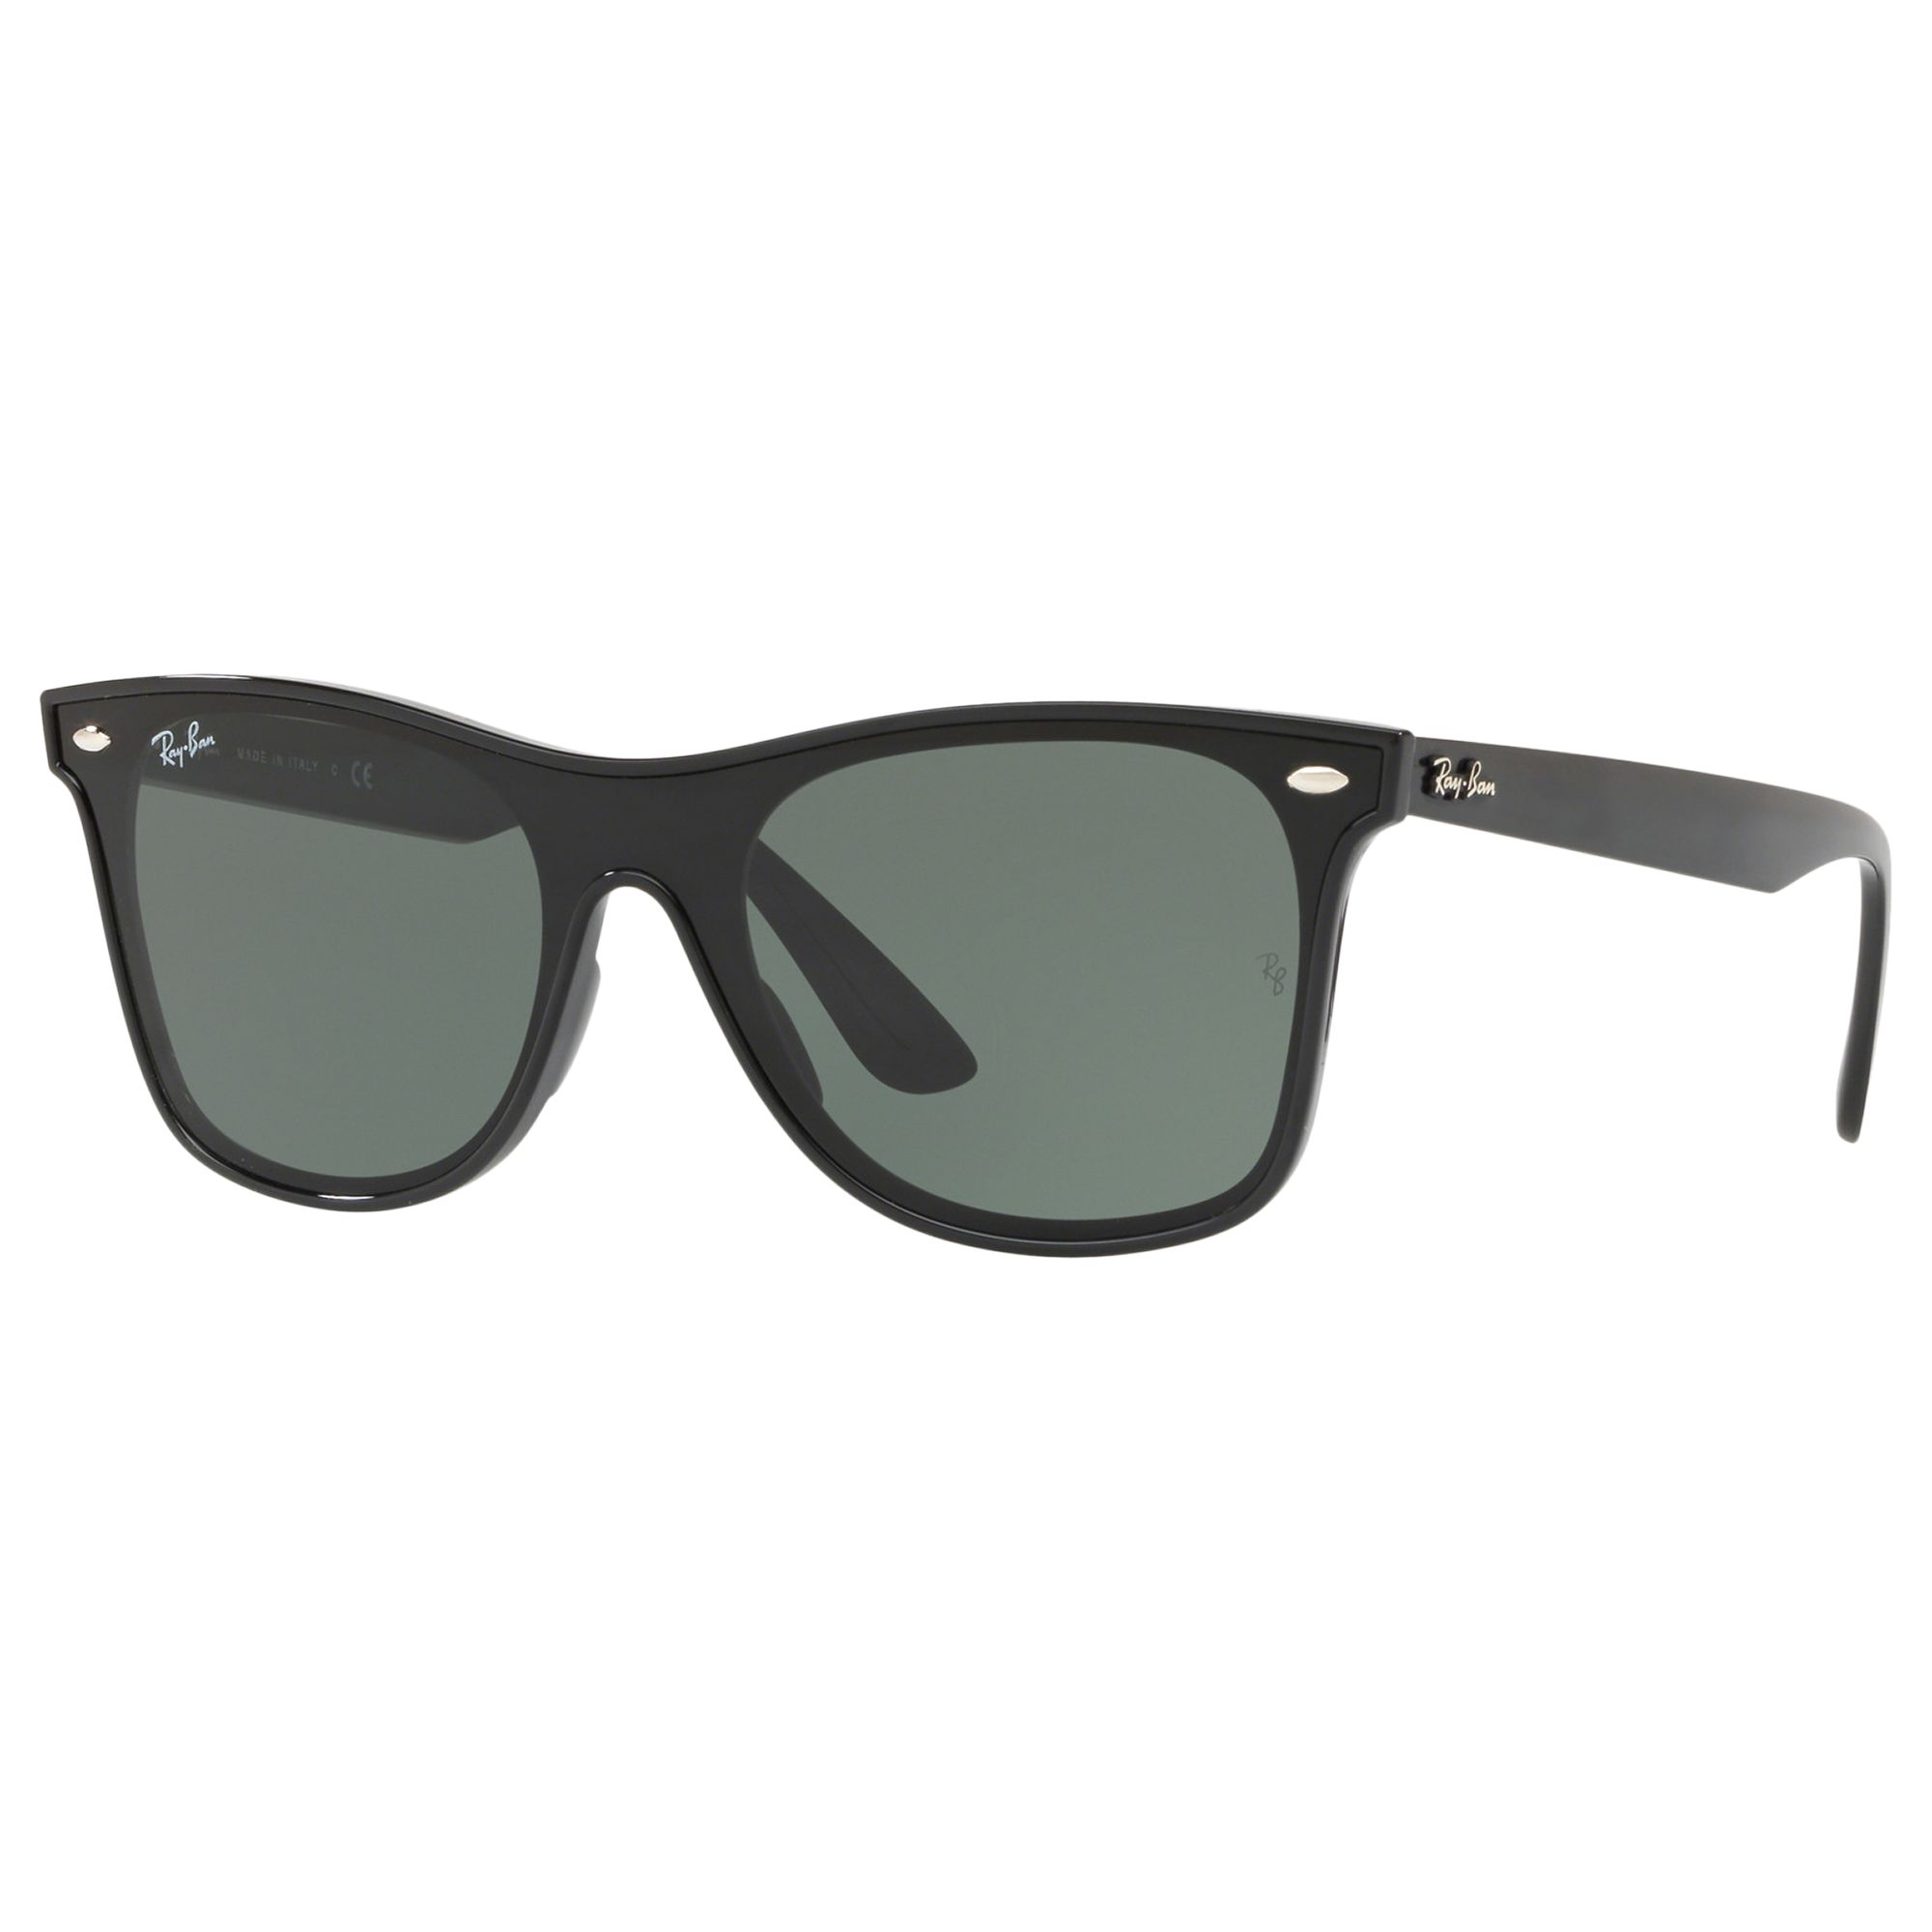 Ray-ban Ray-Ban RB4440 Unisex Polarised Sunglasses, Black/Green